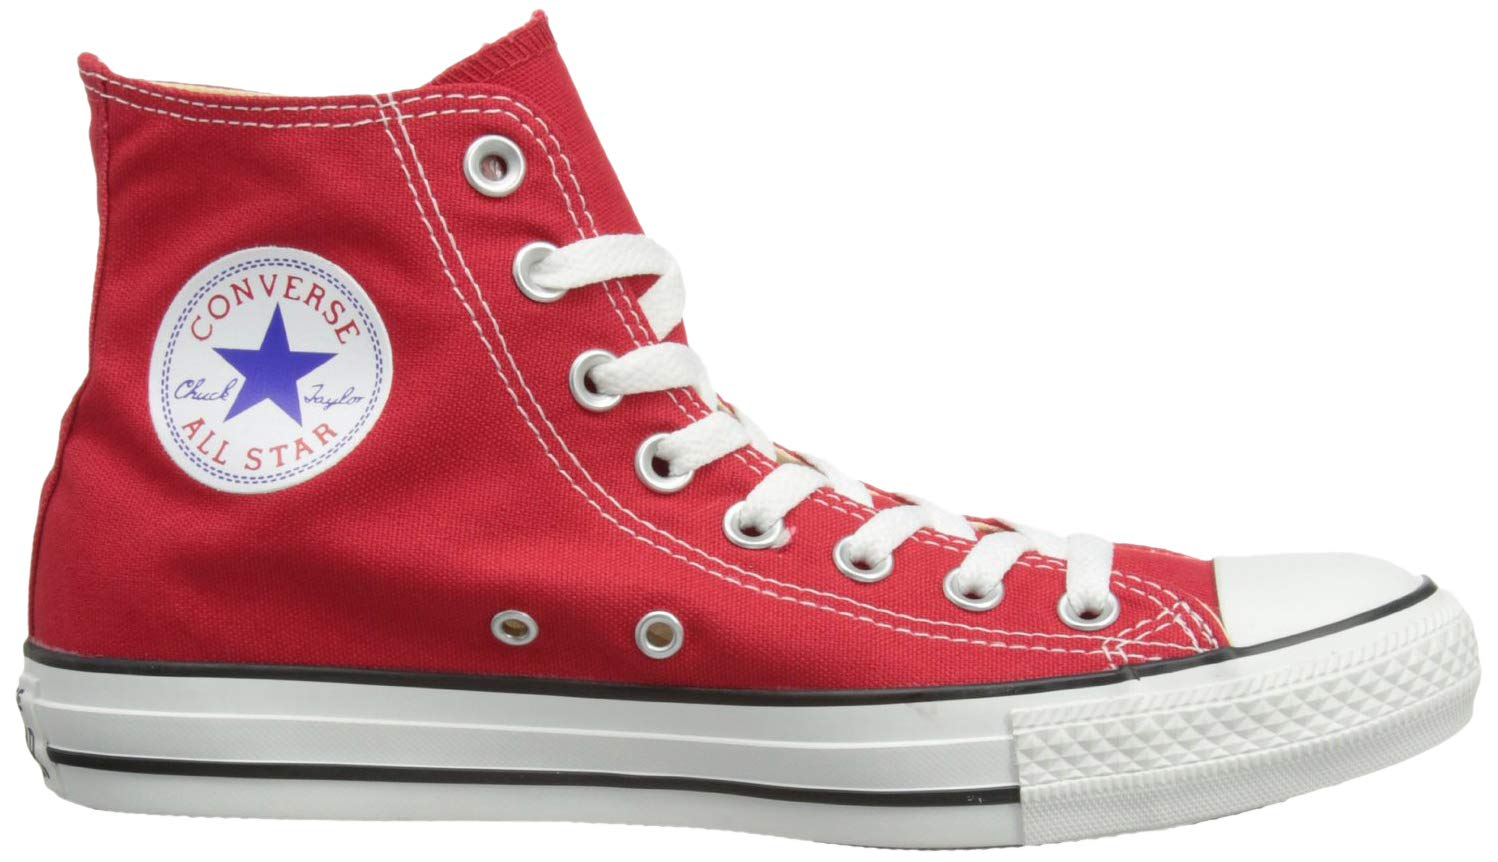 Converse Unisex Chuck Taylor All Star Low Top Red Sneakers - 6.5 D(M) US by Converse (Image #9)